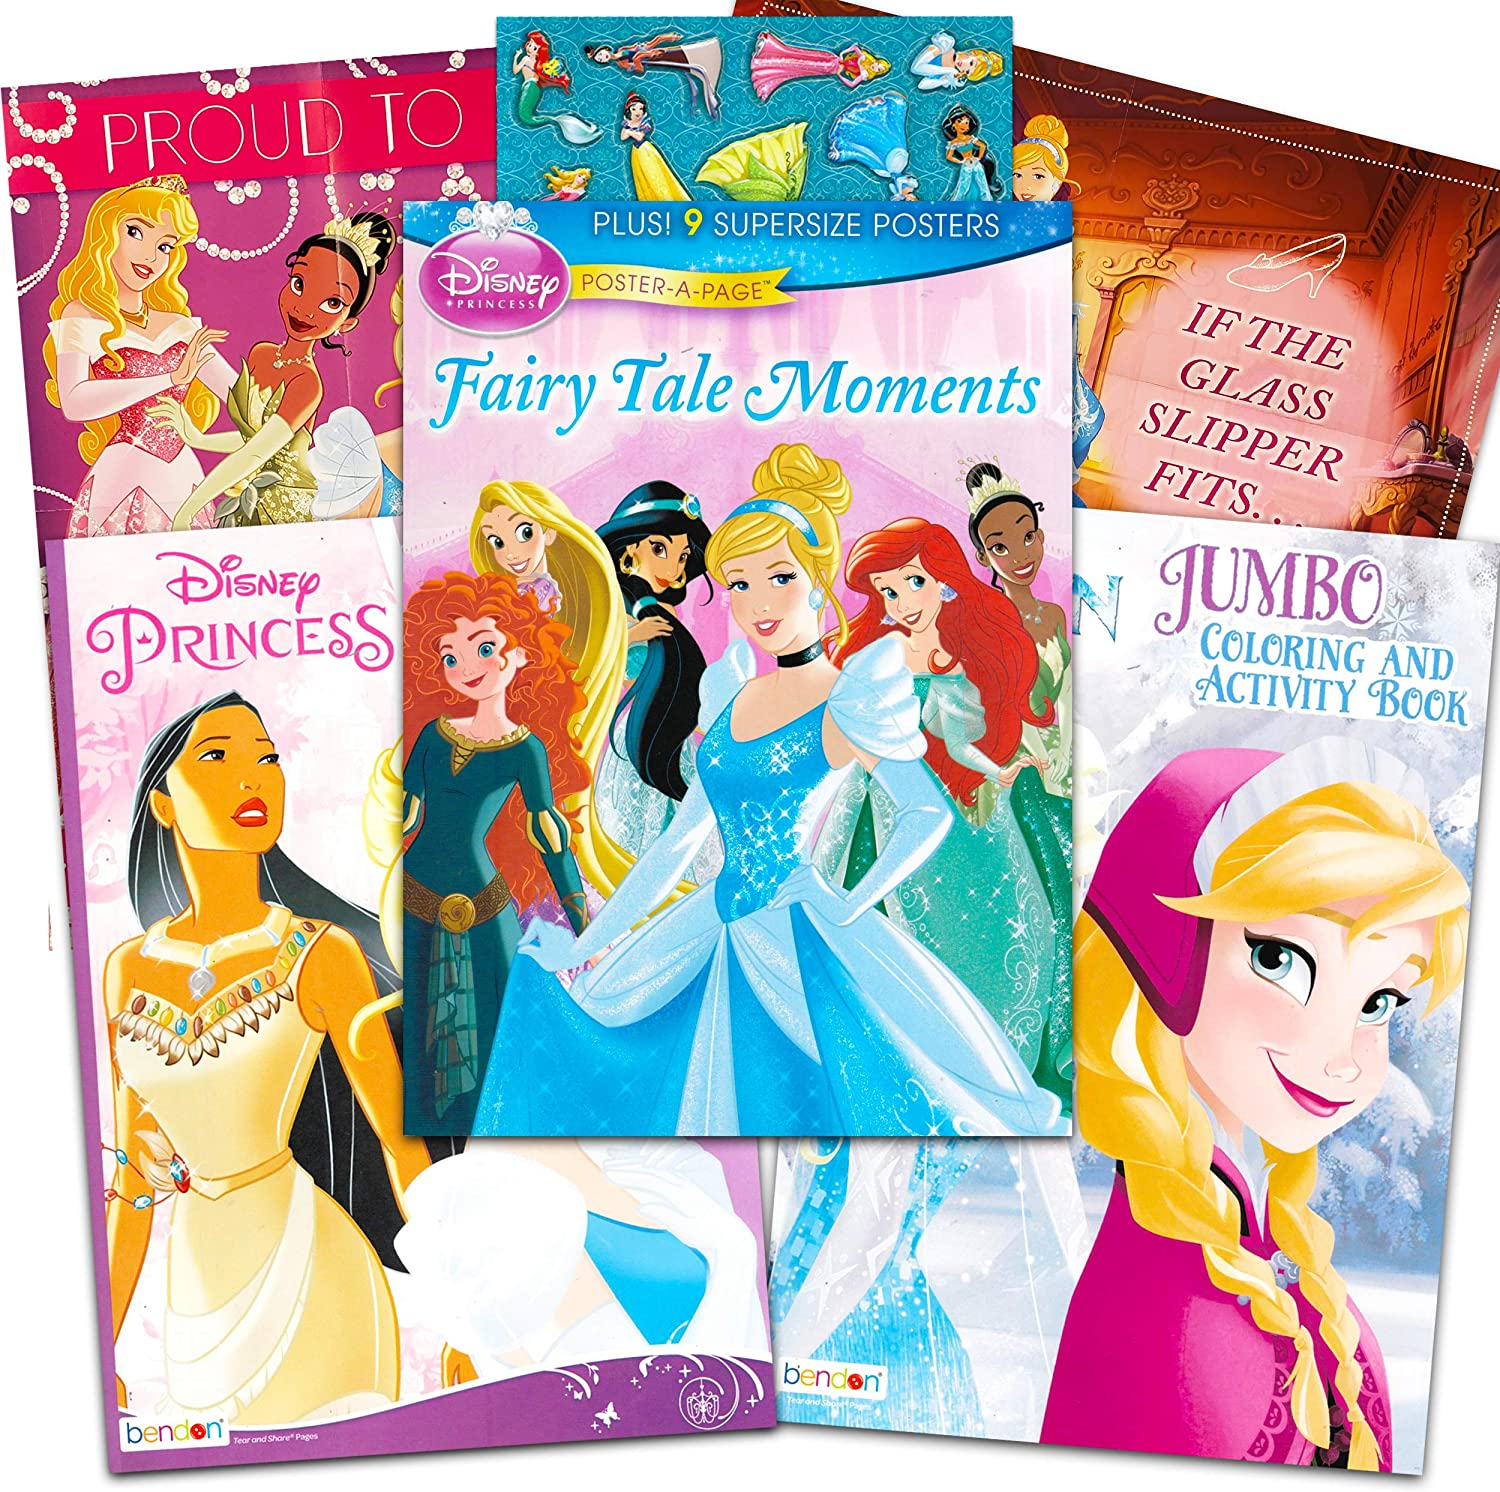 Amazon Com Disney Princess Coloring Activity Books And Posters Super Set Bundle 3 Jumbo Disney Princess Books Filled With Over 120 Page Size Posters 9 Jumbo Posters Games Mazes Puzzles Stickers And More